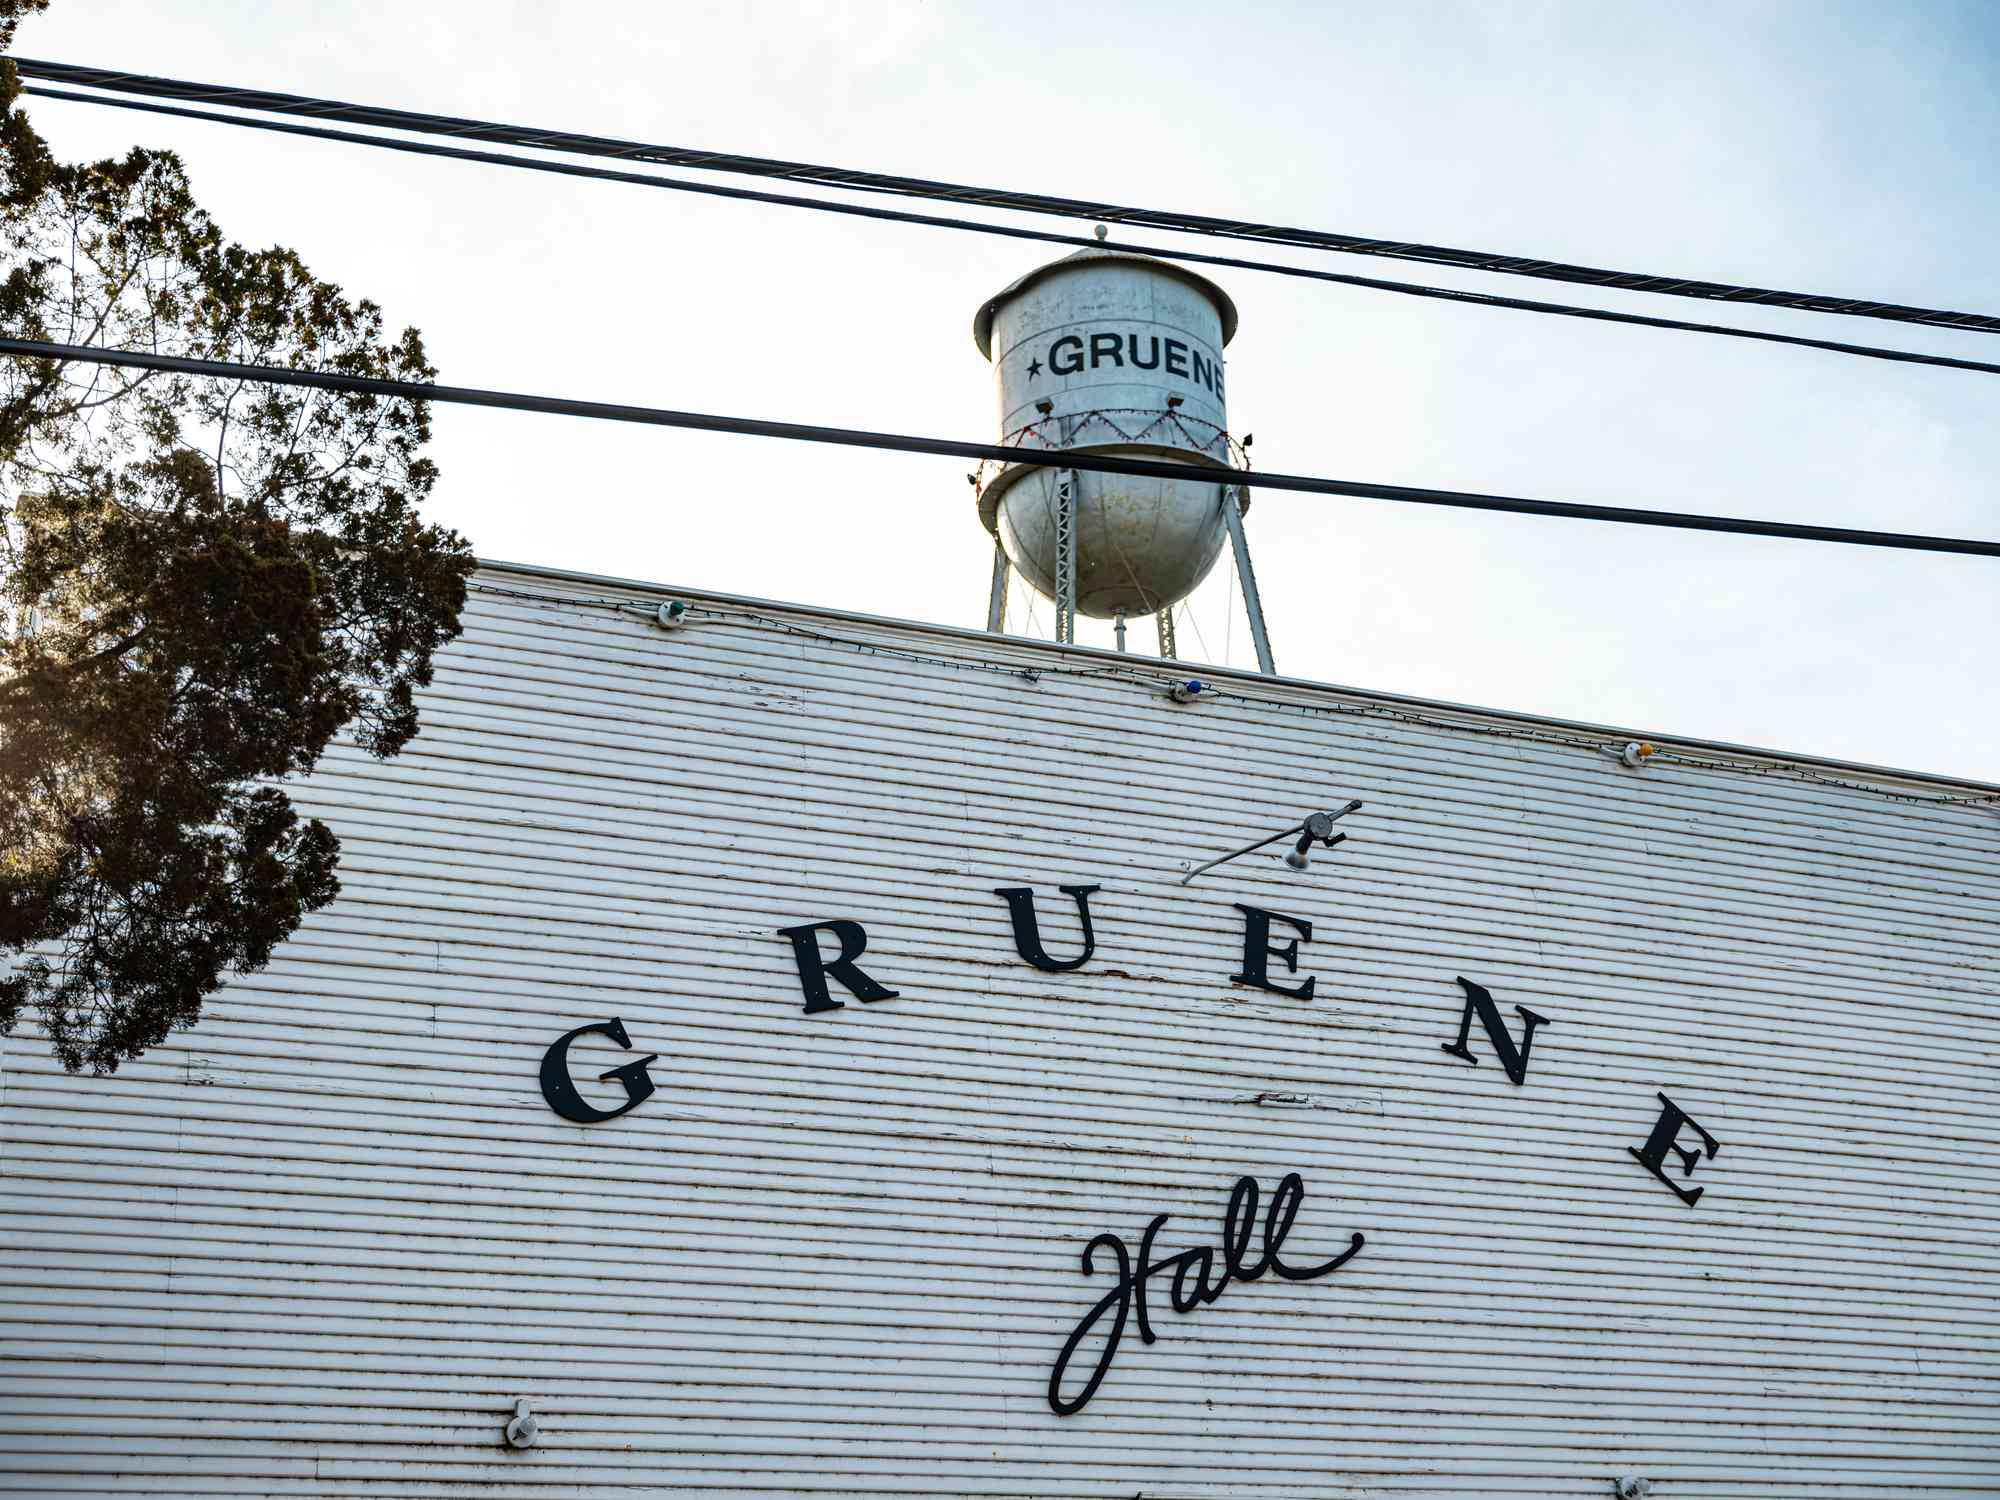 Exterior of famous Gruene Hall, local dance and music hall with old fashioned water tower in the background.